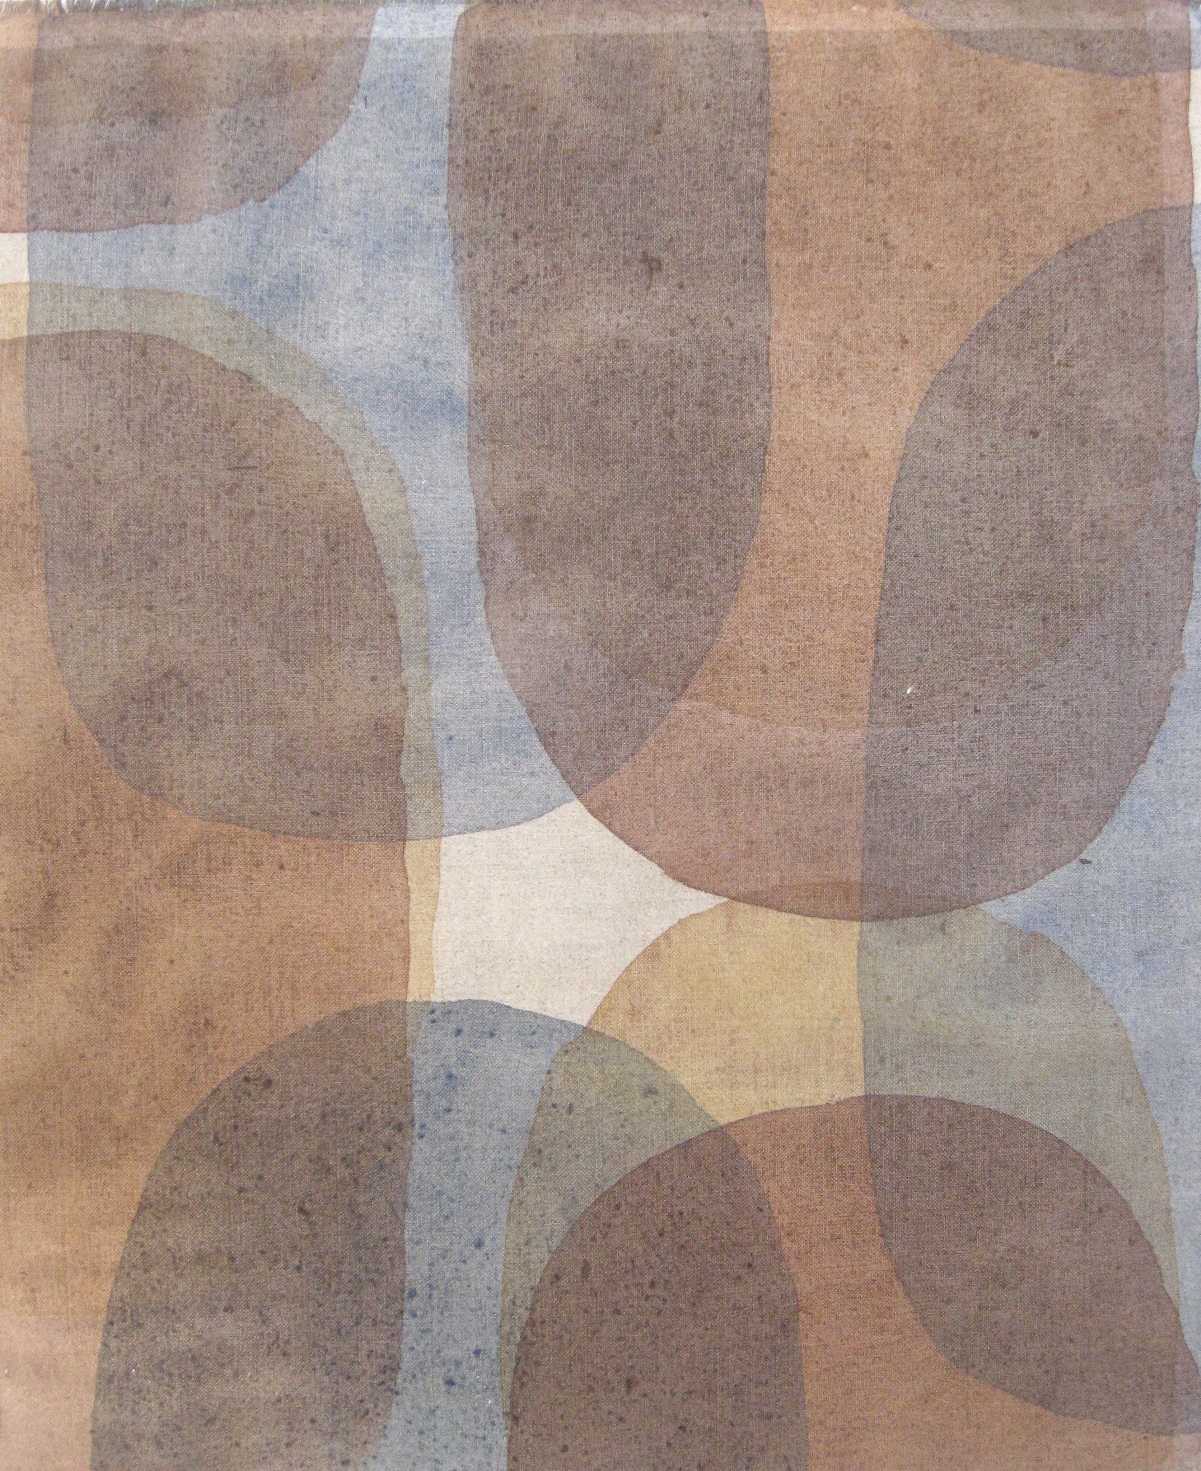 S. Sutro Time and Timelessness #14, 21x17, Acrylic on Linen 2010.jpg